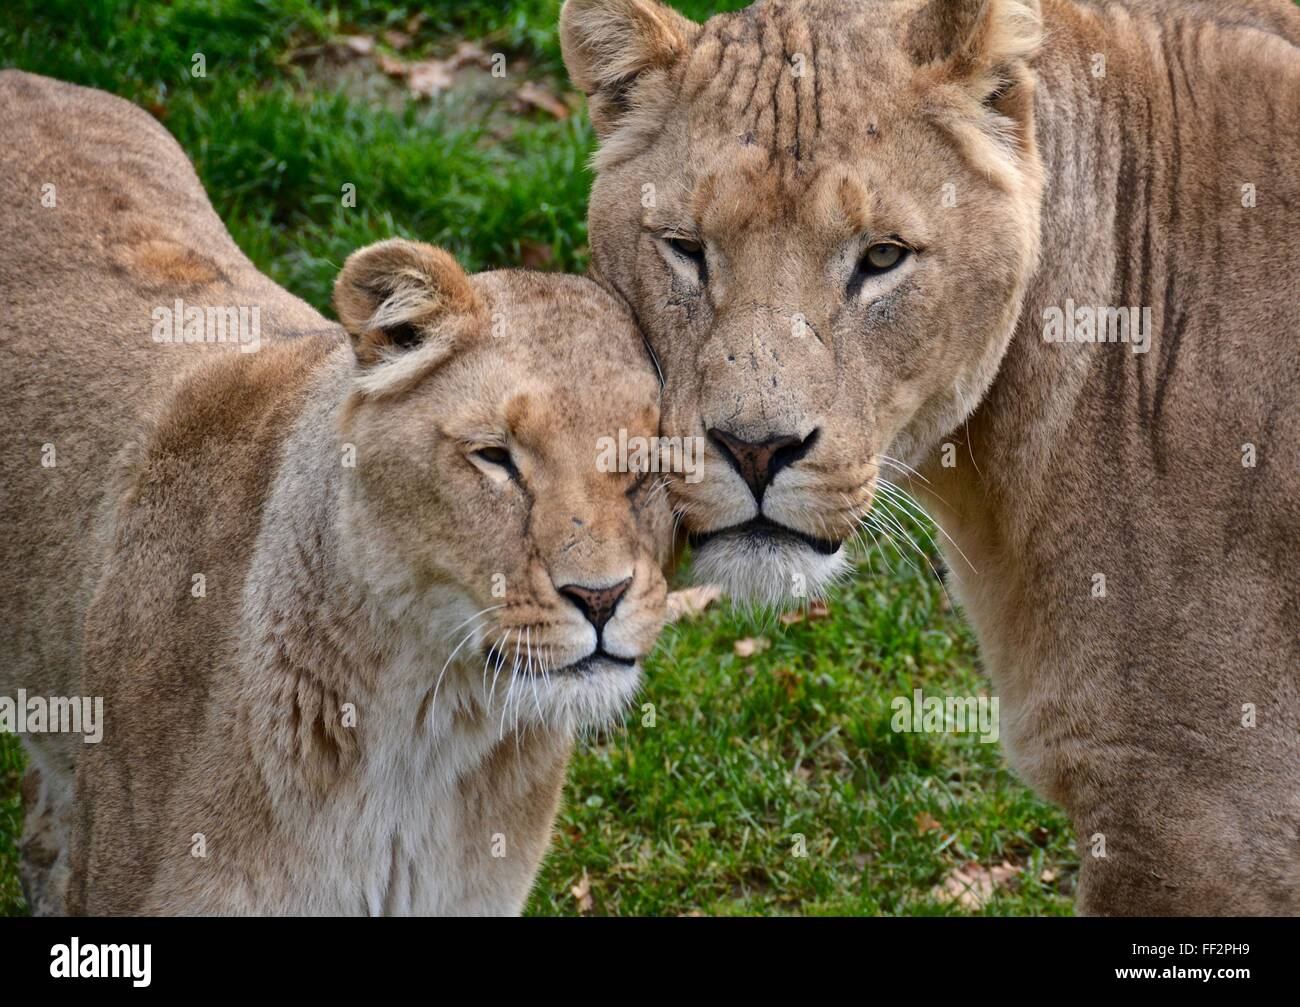 Montrer de l'affection du Lion. Photo Stock